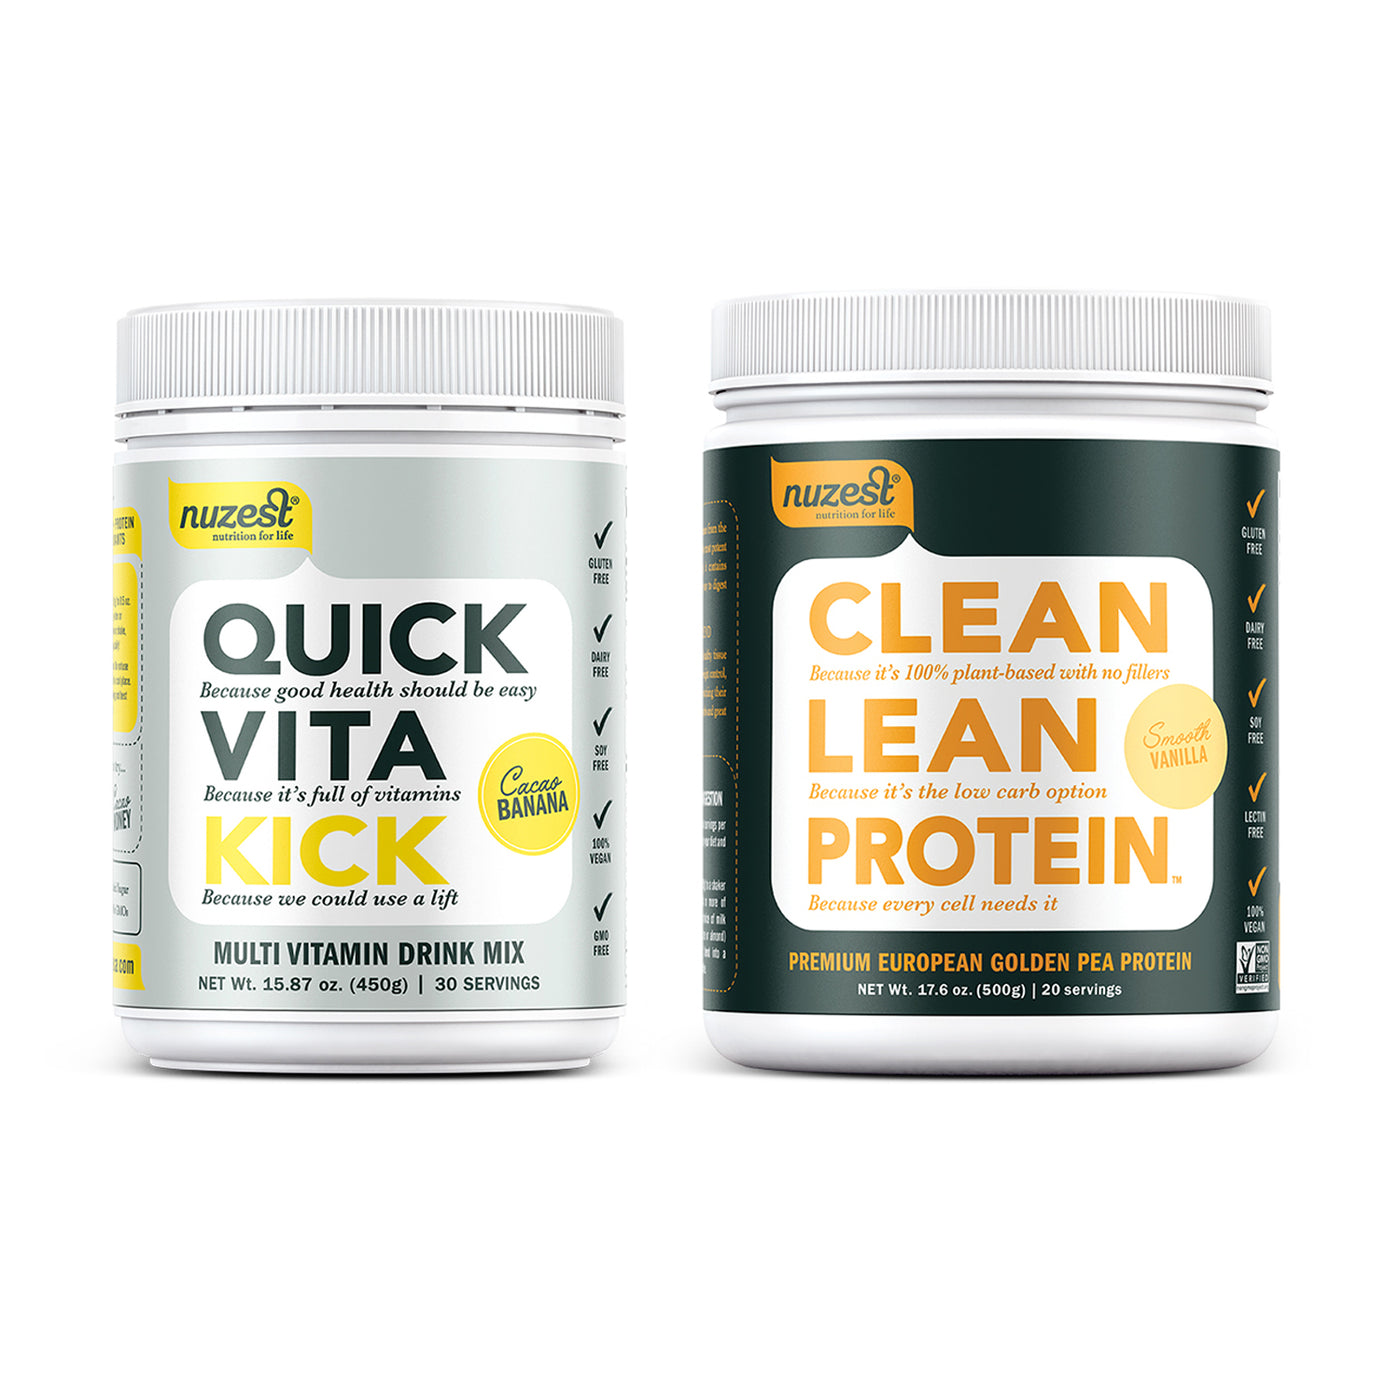 Clean Lean Protein Bar Box